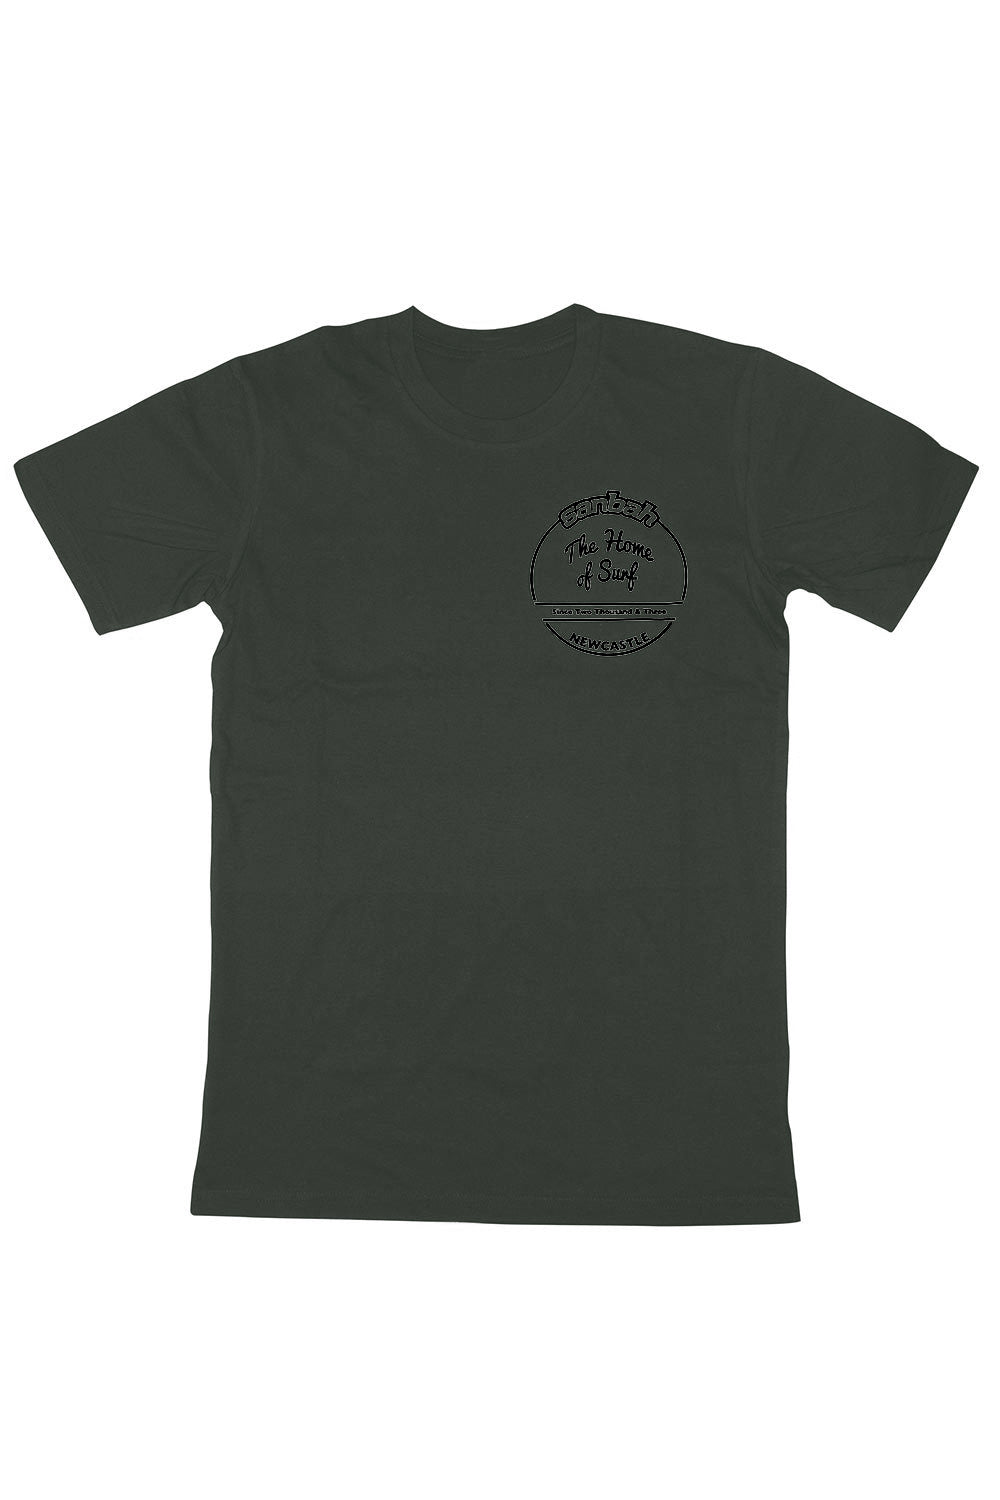 Home of Surf T-Shirt - Army